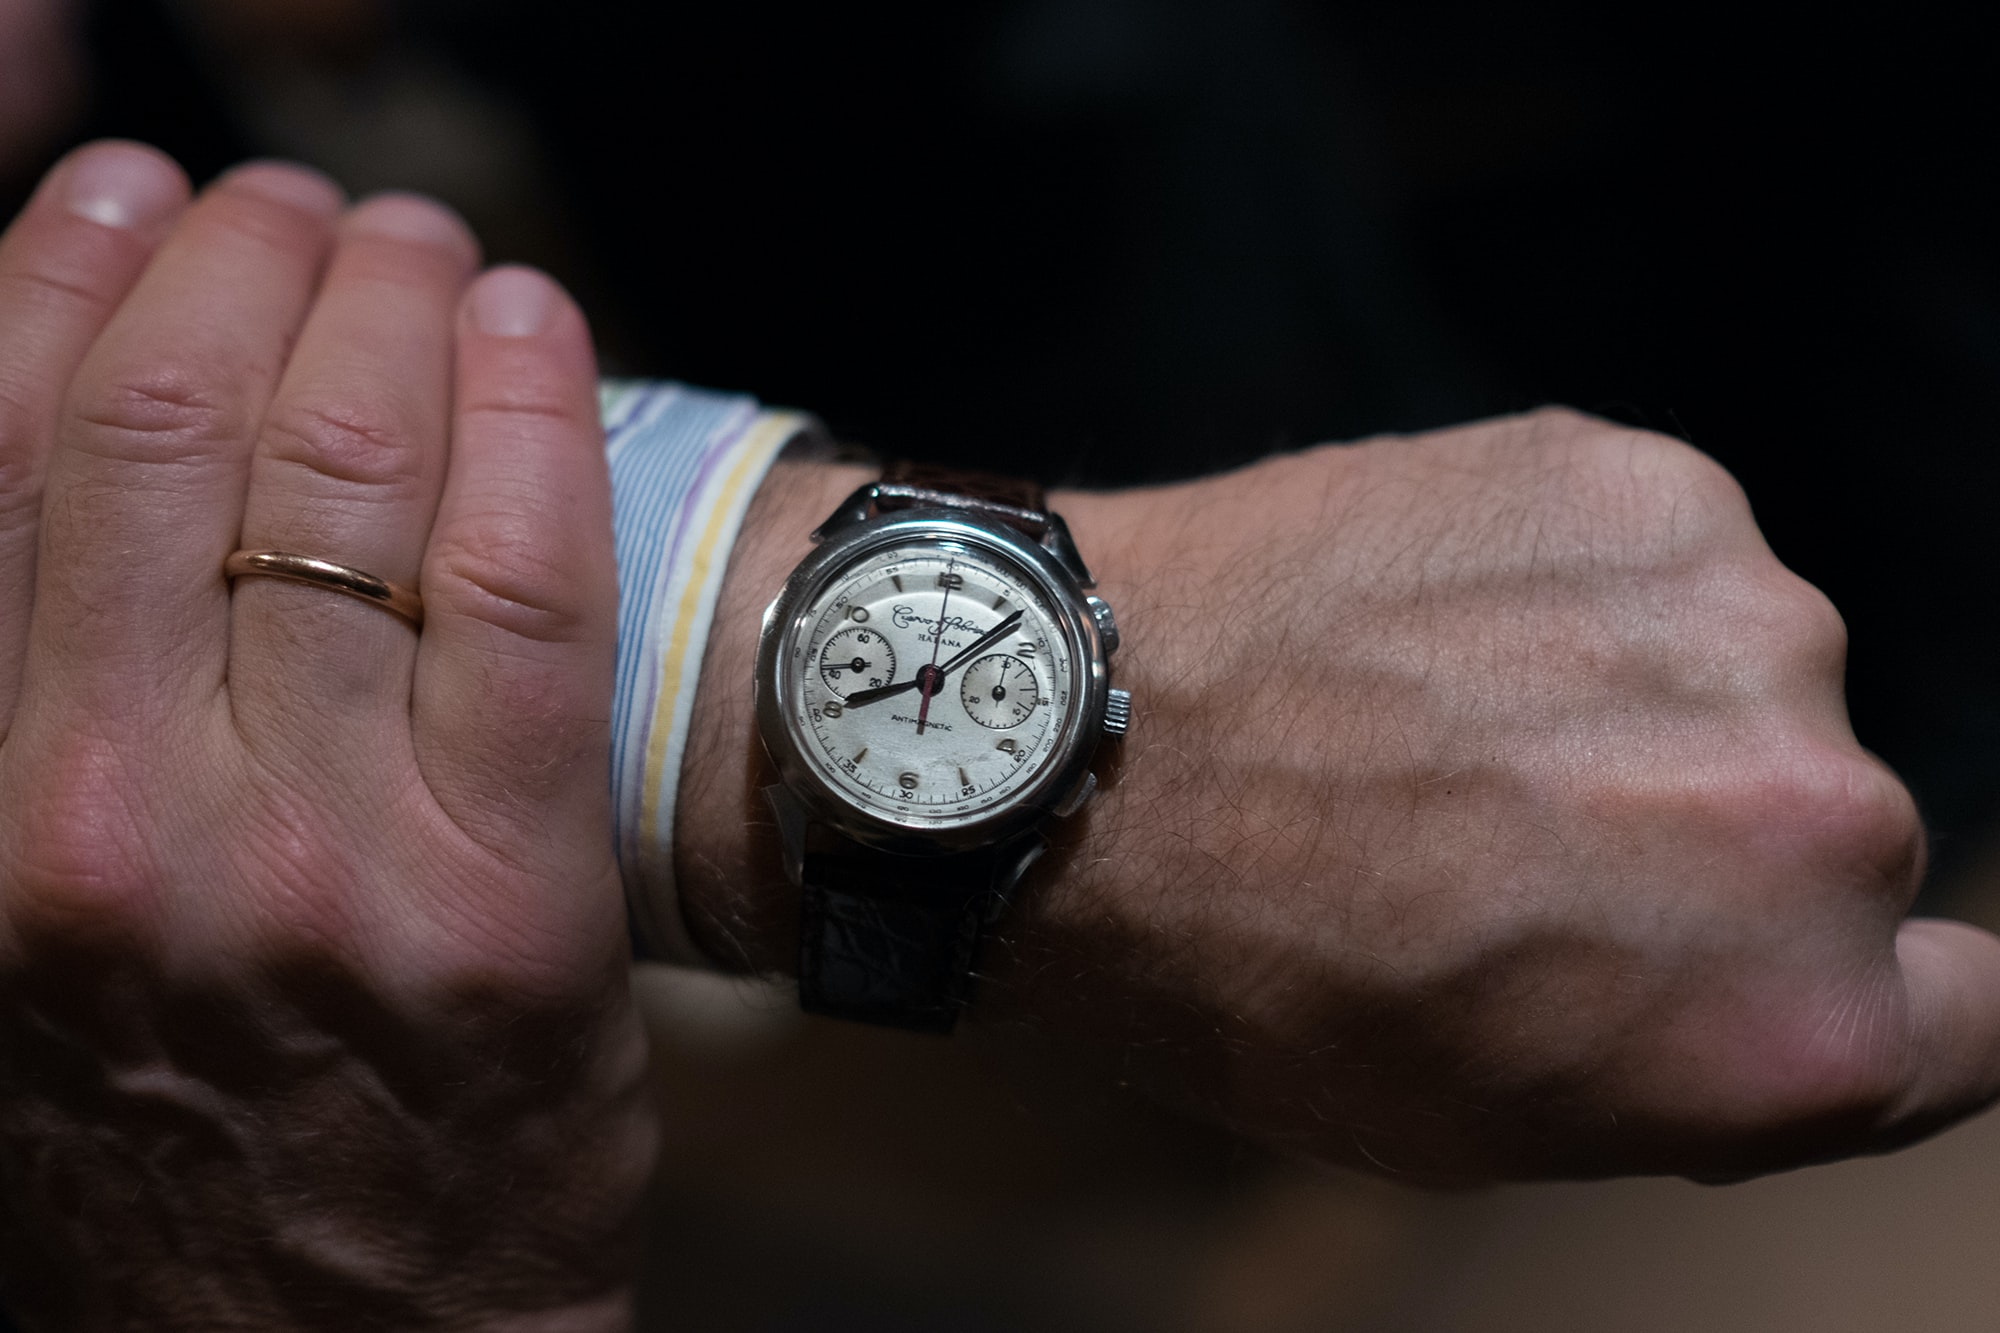 Photo Report: Watch Spotting At The HODINKEE Meet-Up In London (Plus Our Holiday 2016 Pop-Up At Harrods) Photo Report: Watch Spotting At The HODINKEE Meet-Up In London (Plus Our Holiday 2016 Pop-Up At Harrods) Hodinkee event 29 nov 2016 71